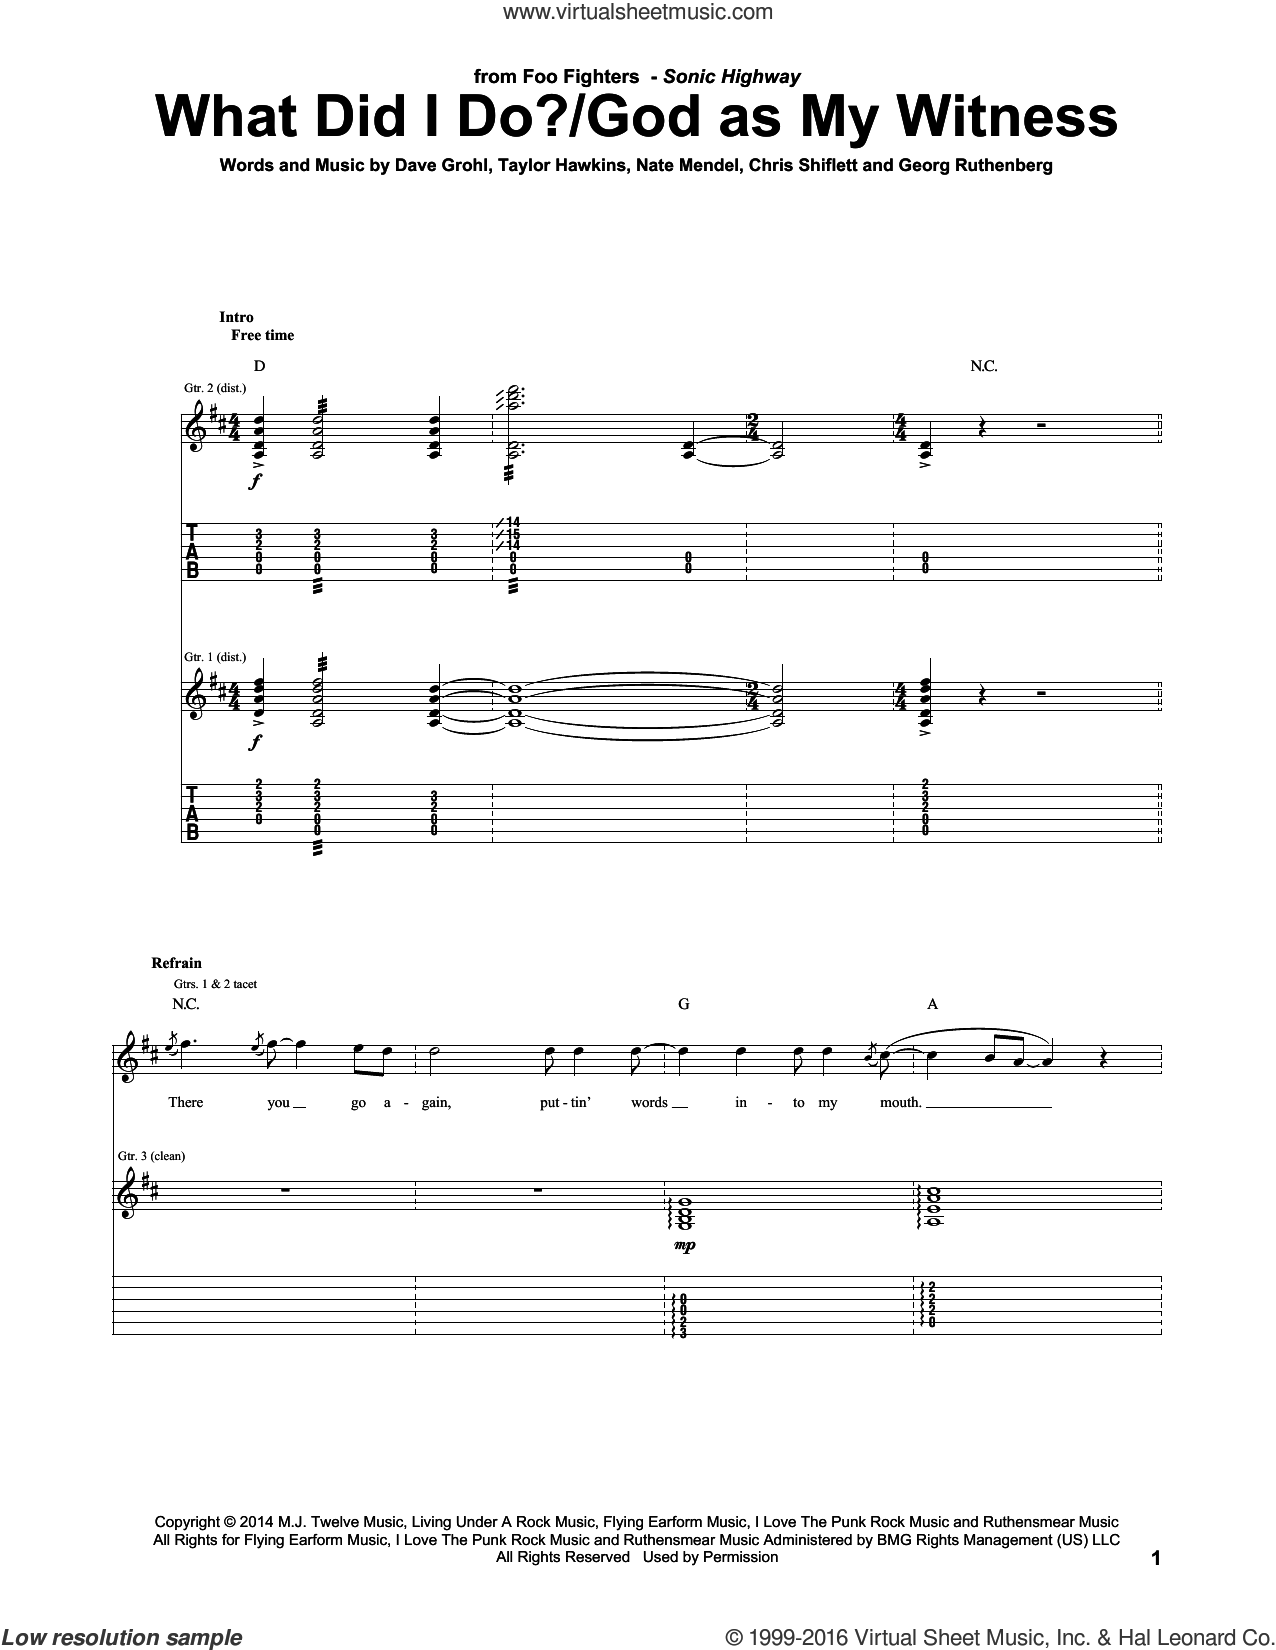 What Did I Do?/God As My Witness sheet music for guitar (tablature) by Foo Fighters, Chris Shiflett, Dave Grohl, Georg Ruthenberg, Nate Mendel and Taylor Hawkins, intermediate. Score Image Preview.